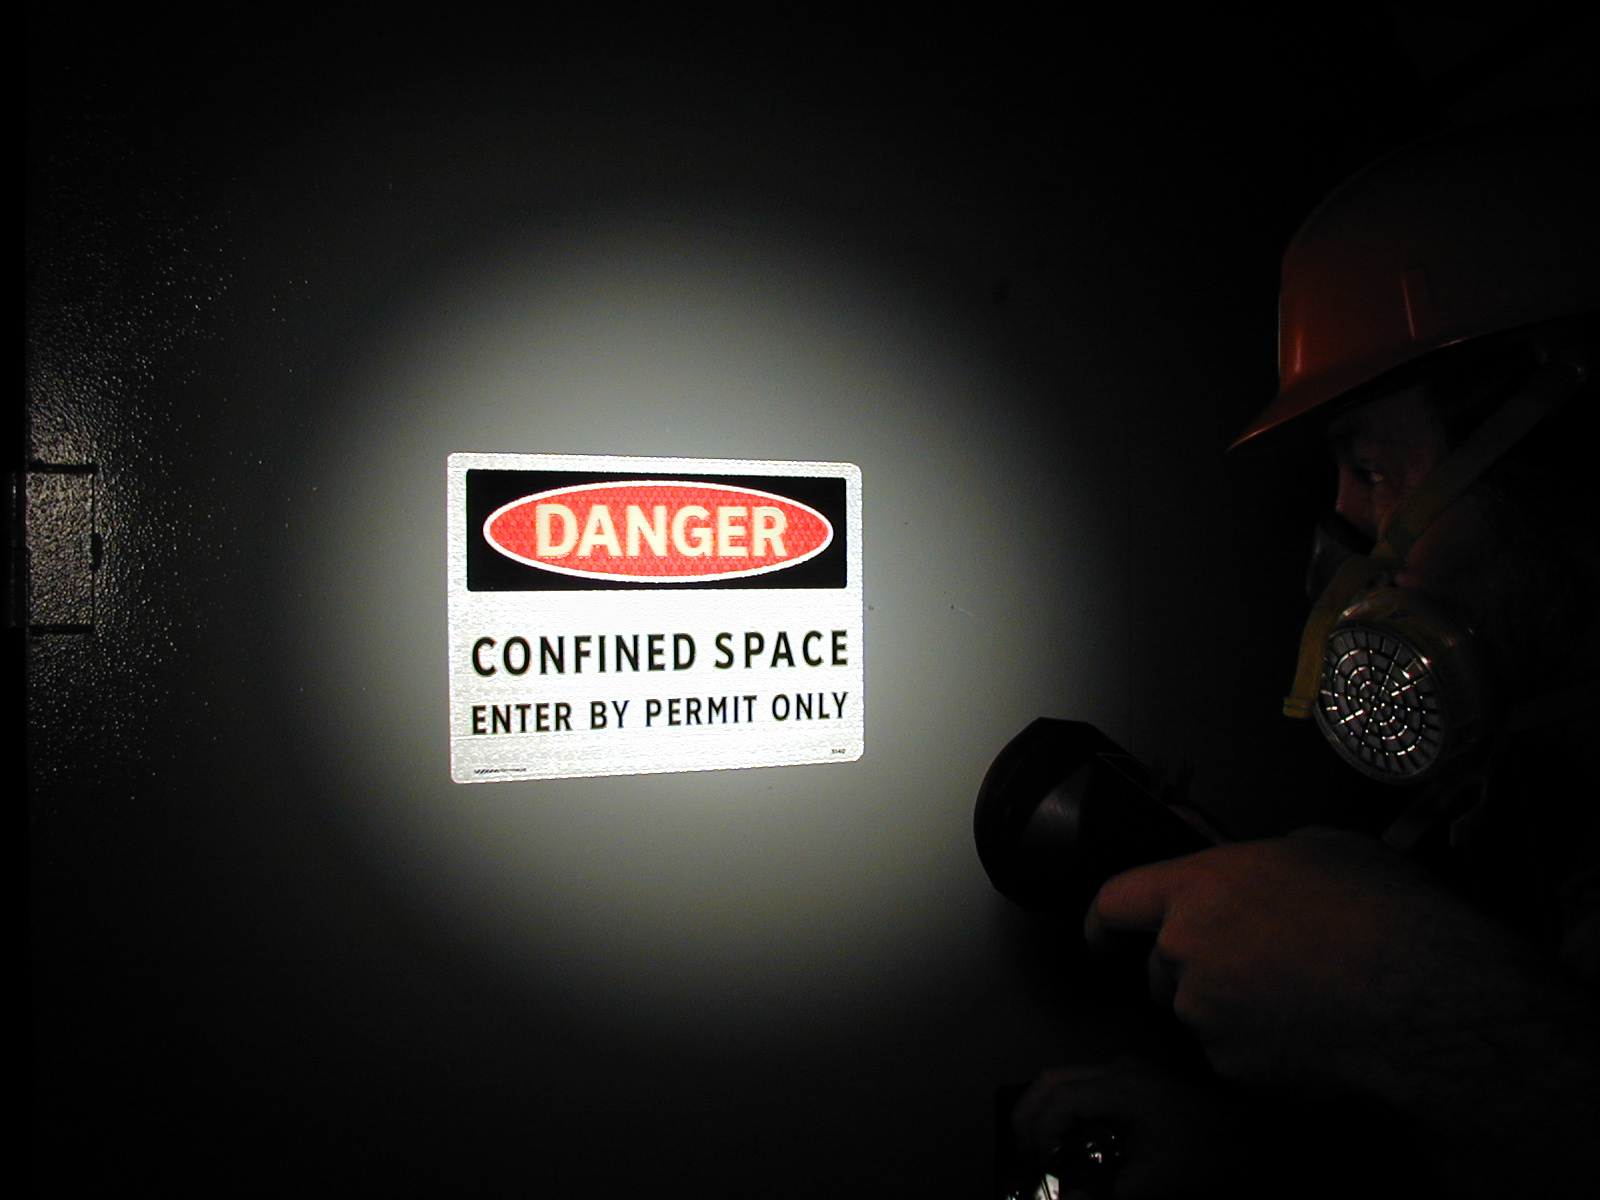 Safe Working In Confined Space Course Refresher Cribhut